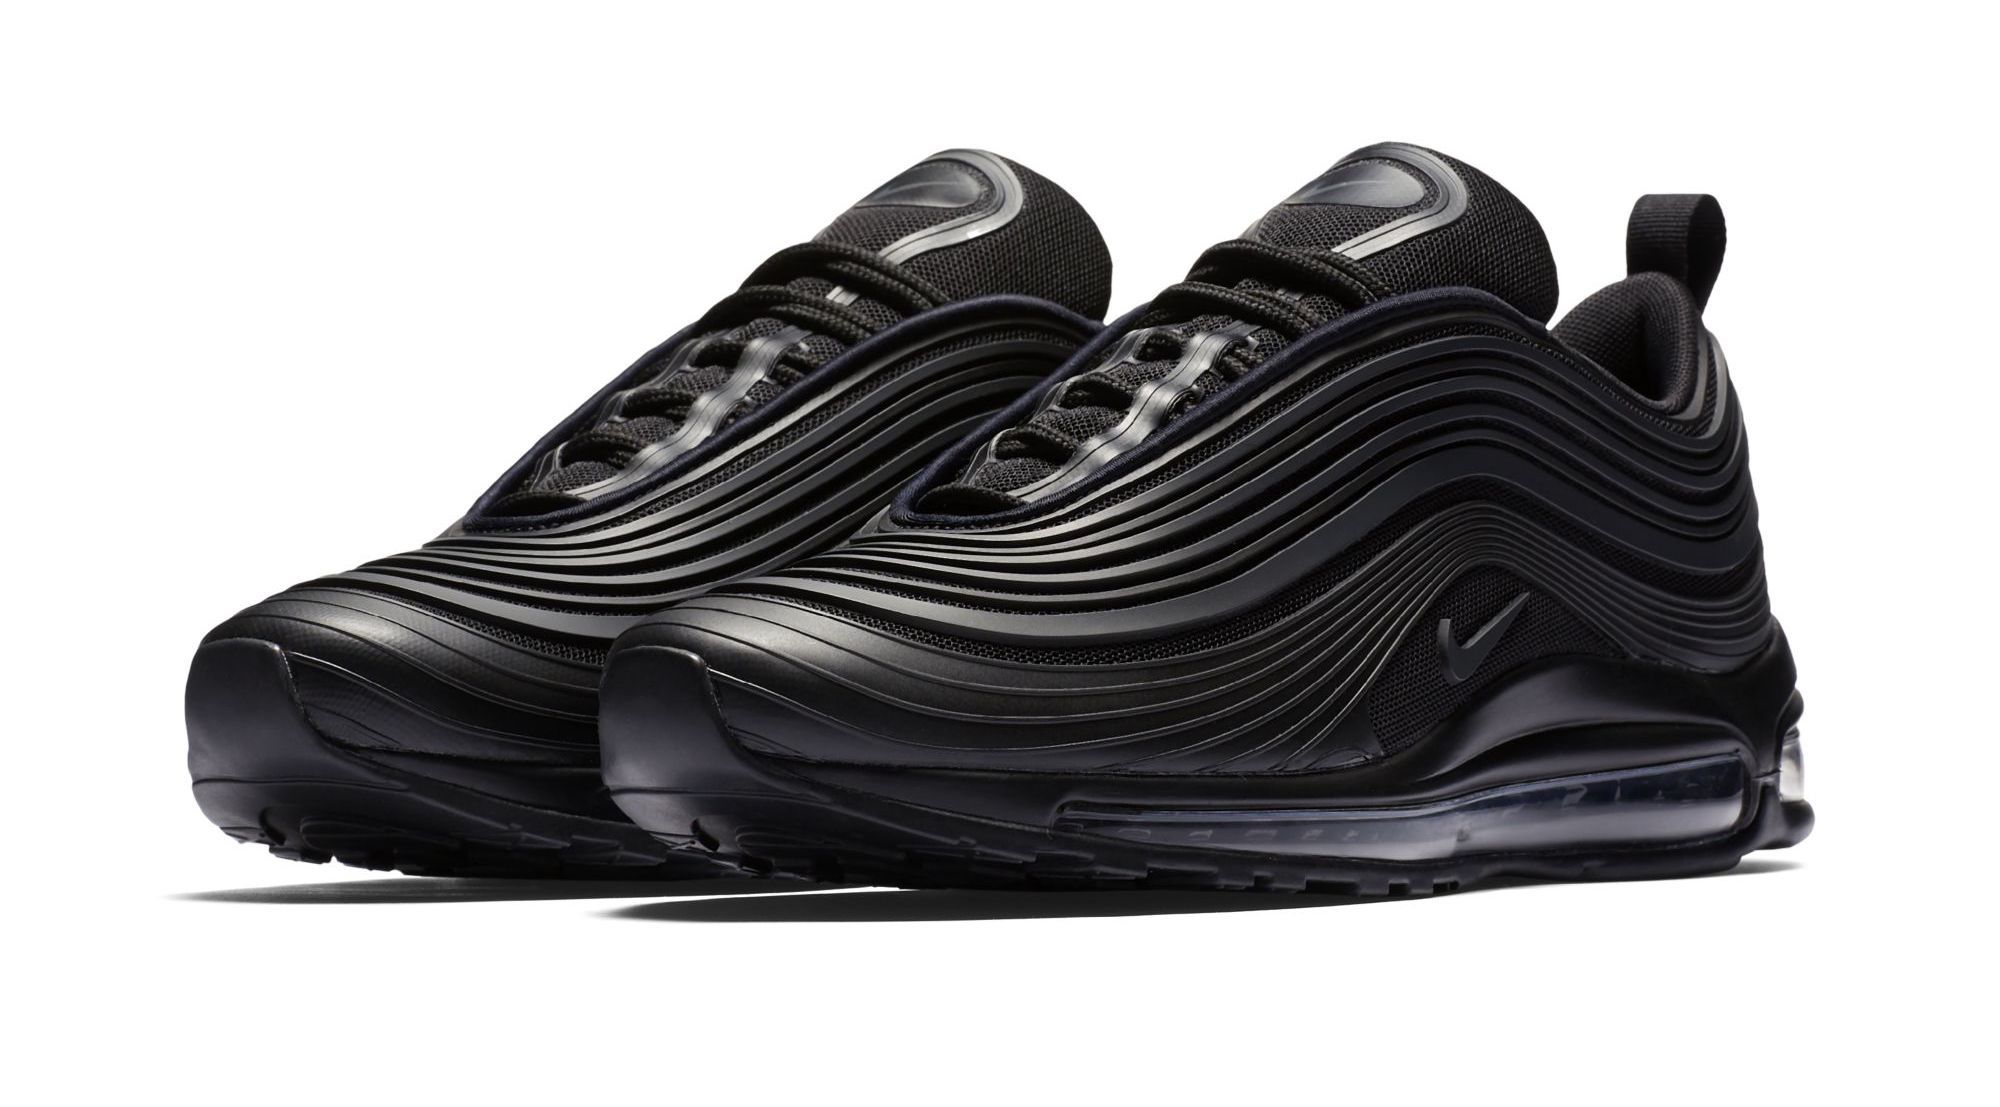 Nike Air Max 97 Ultra 17 Premium Triple Black Coming Soon